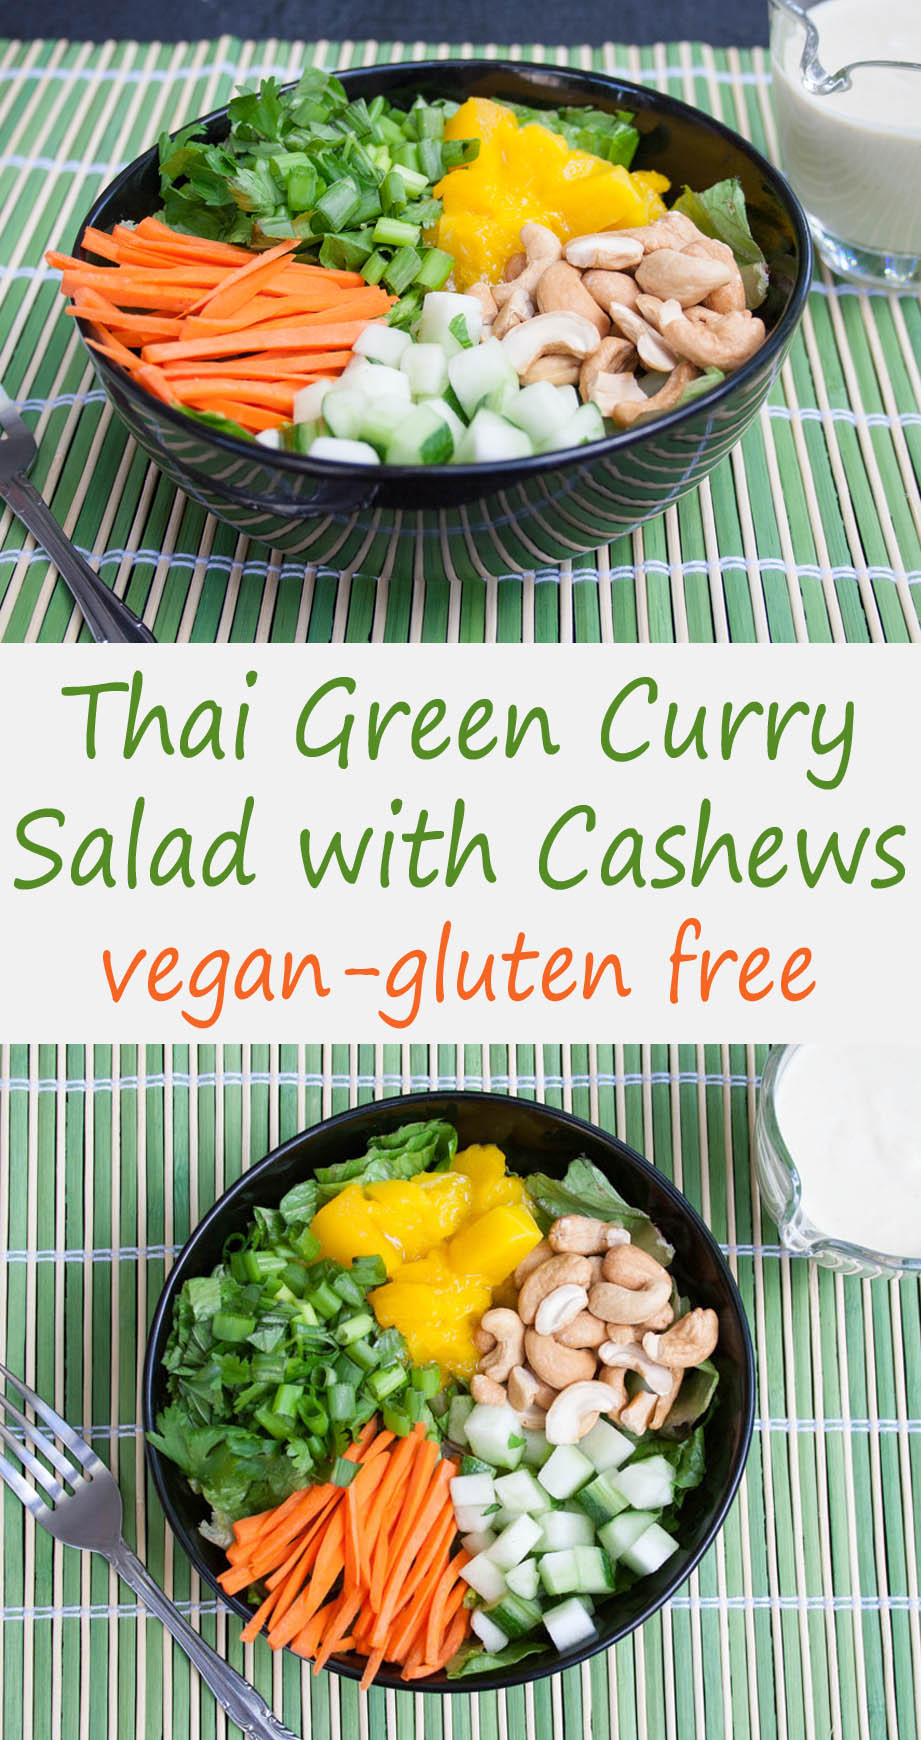 Thai Green Curry Salad with Cashews collage photos with text.